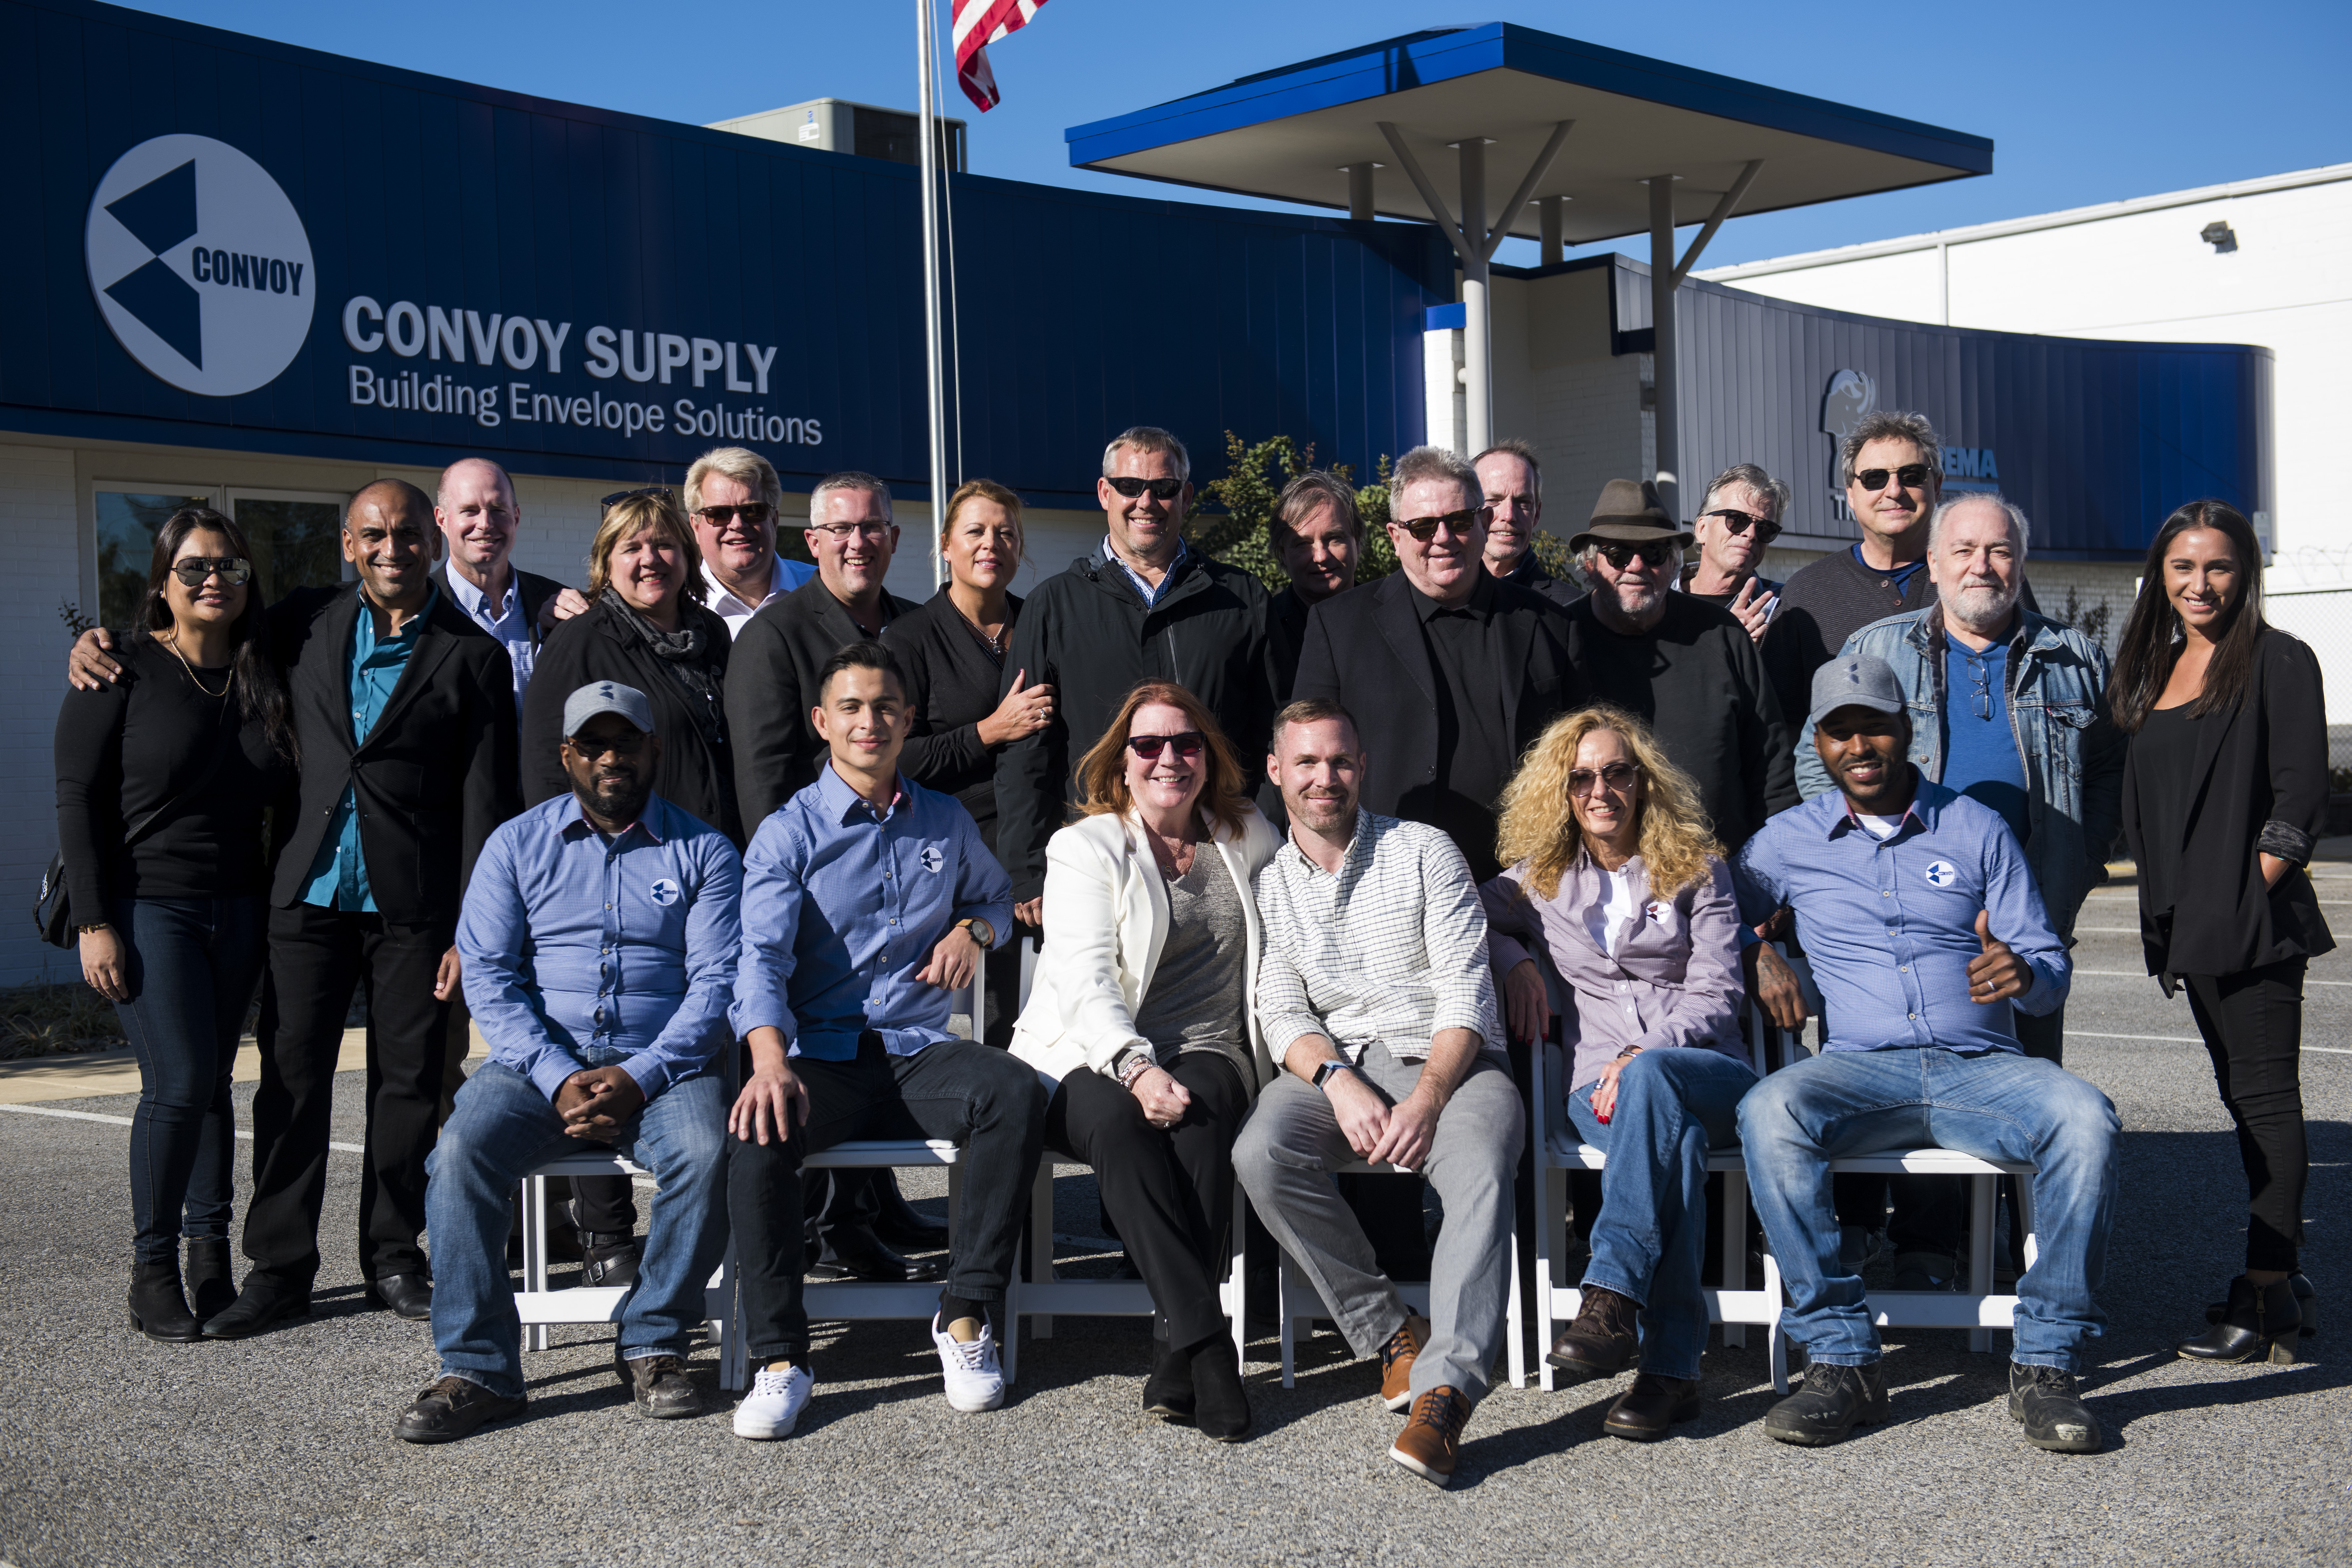 Team Convoy, BEST Group, and guests